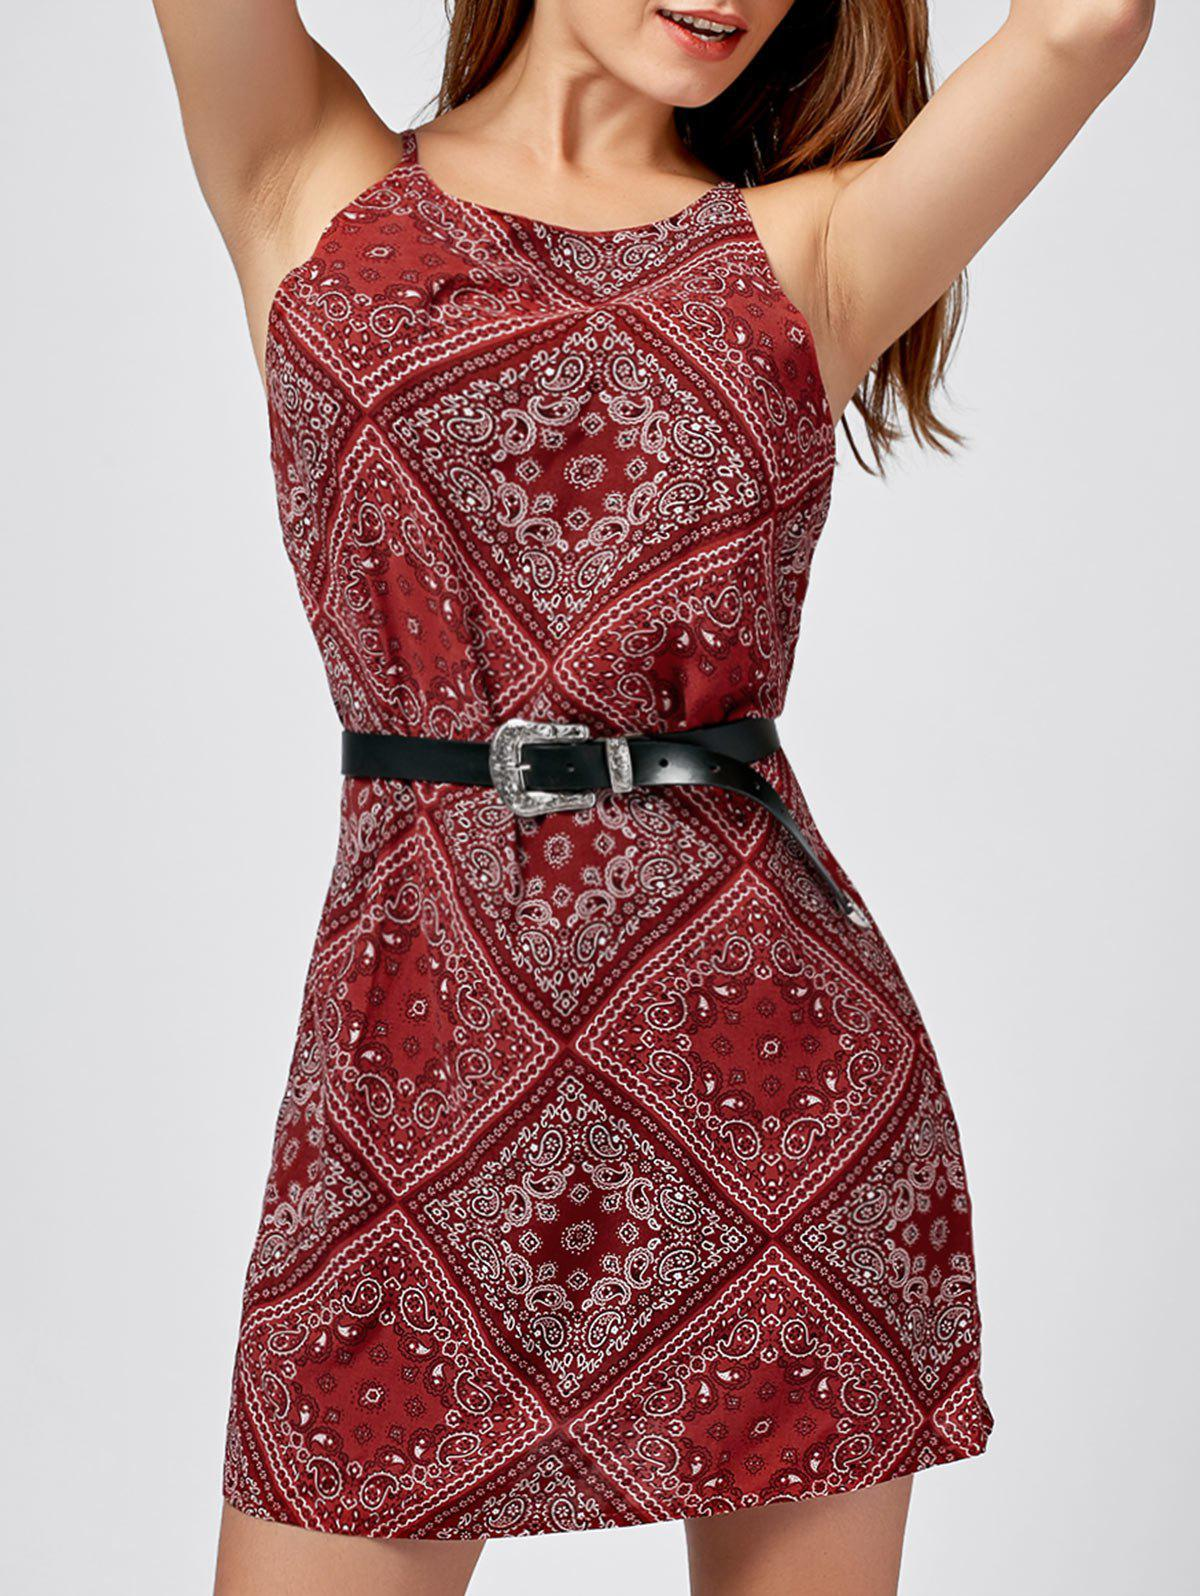 Paisley Print Mini SundressWOMEN<br><br>Size: S; Color: RED; Style: Brief; Material: Polyester,Spandex; Silhouette: Straight; Dresses Length: Mini; Neckline: Spaghetti Strap; Sleeve Length: Sleeveless; Pattern Type: Paisley; With Belt: No; Season: Summer; Weight: 0.1900kg; Package Contents: 1 x Dress;